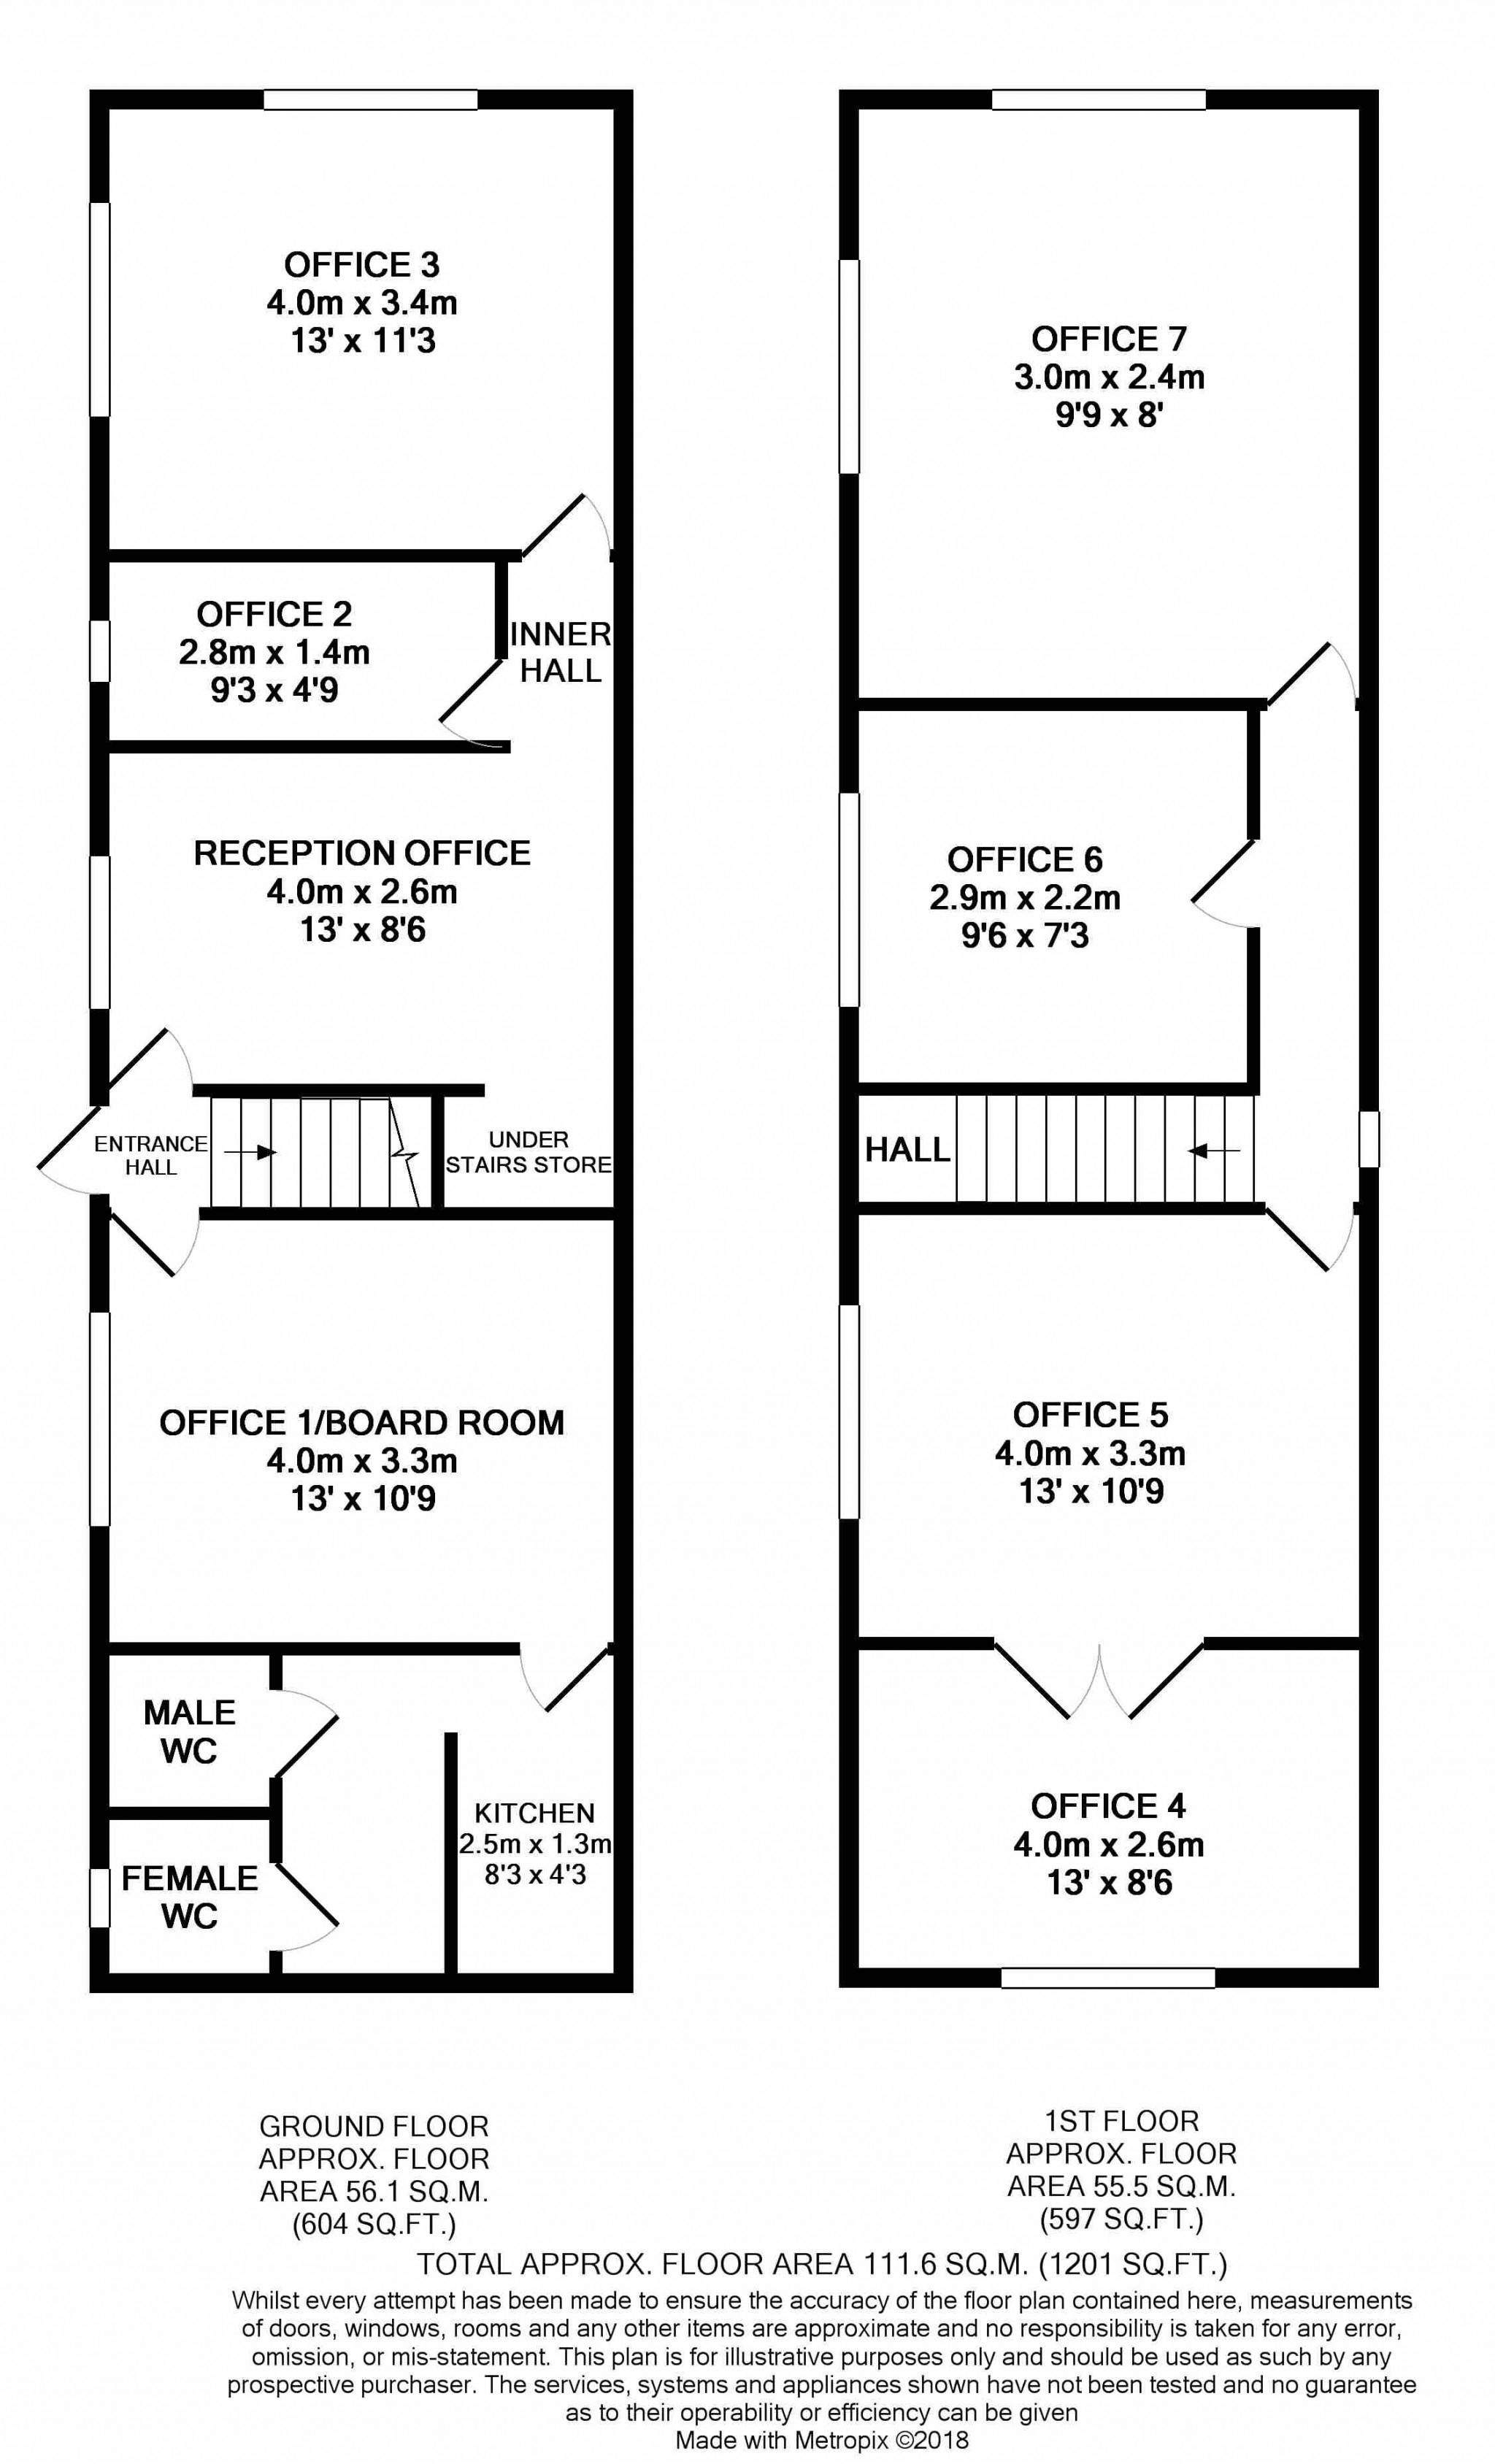 Commercial Property To Rent - Floorplan 1